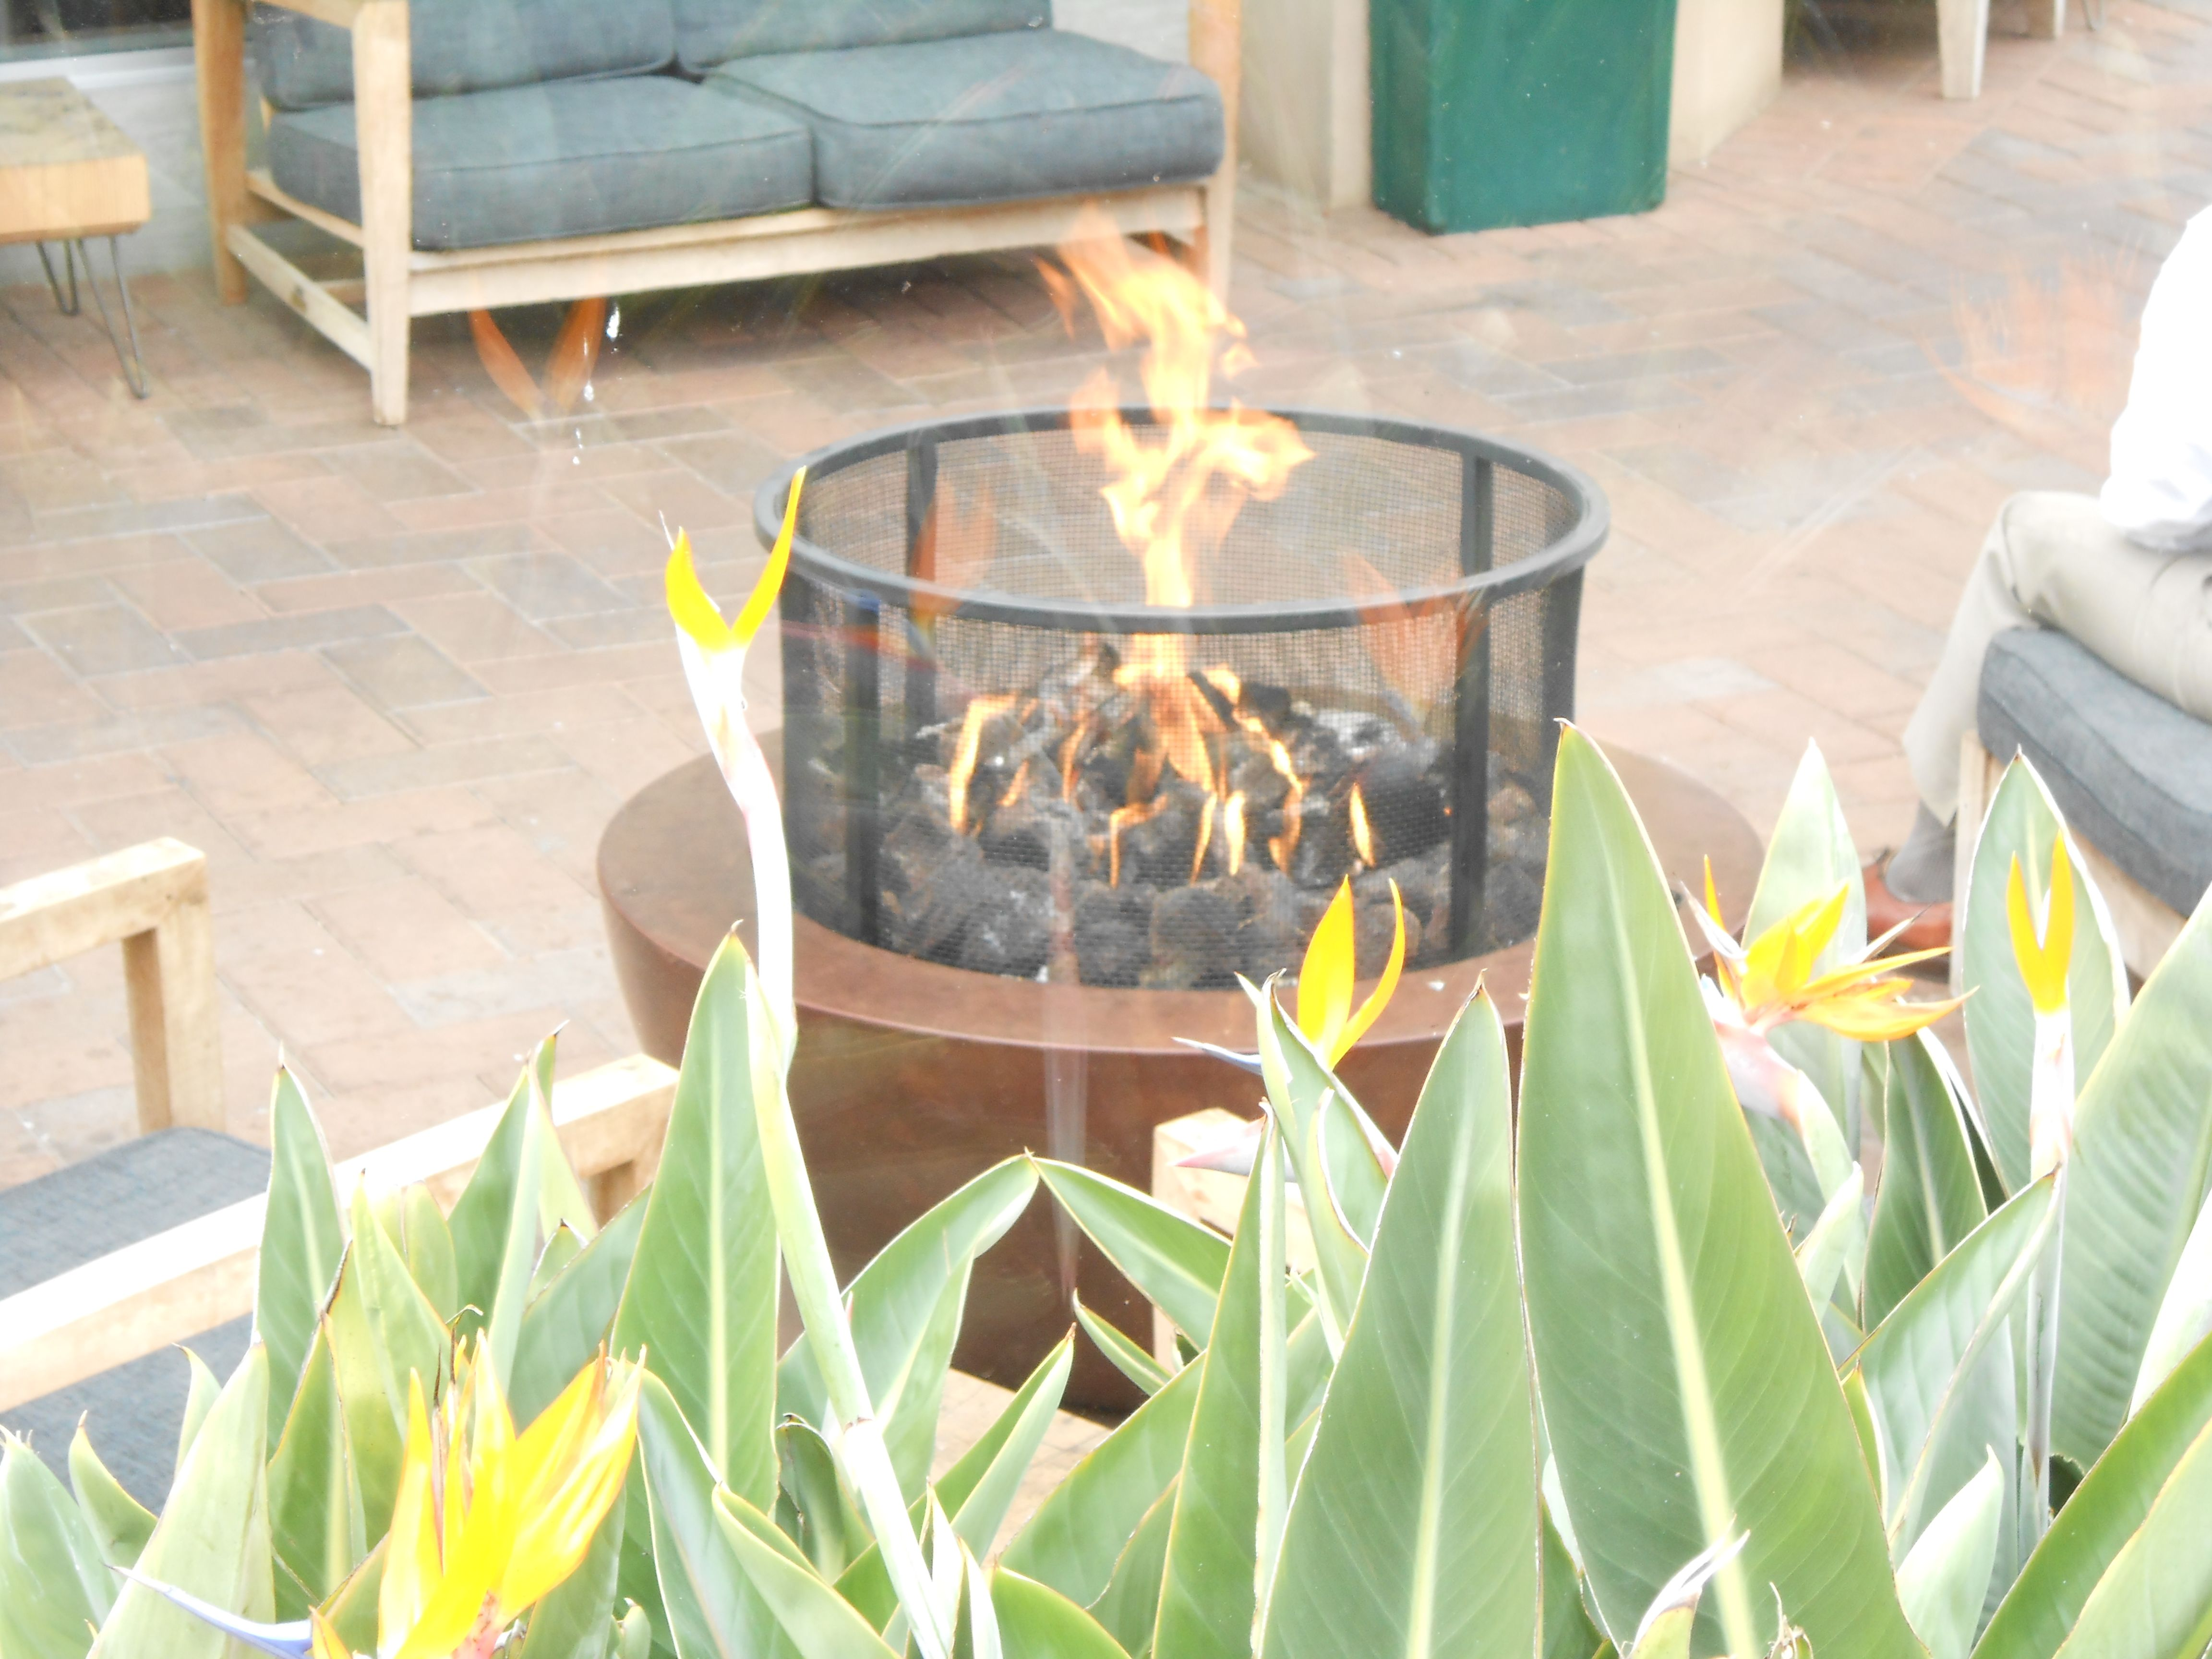 fire pit and birds of paradise flowers share space at the fashion